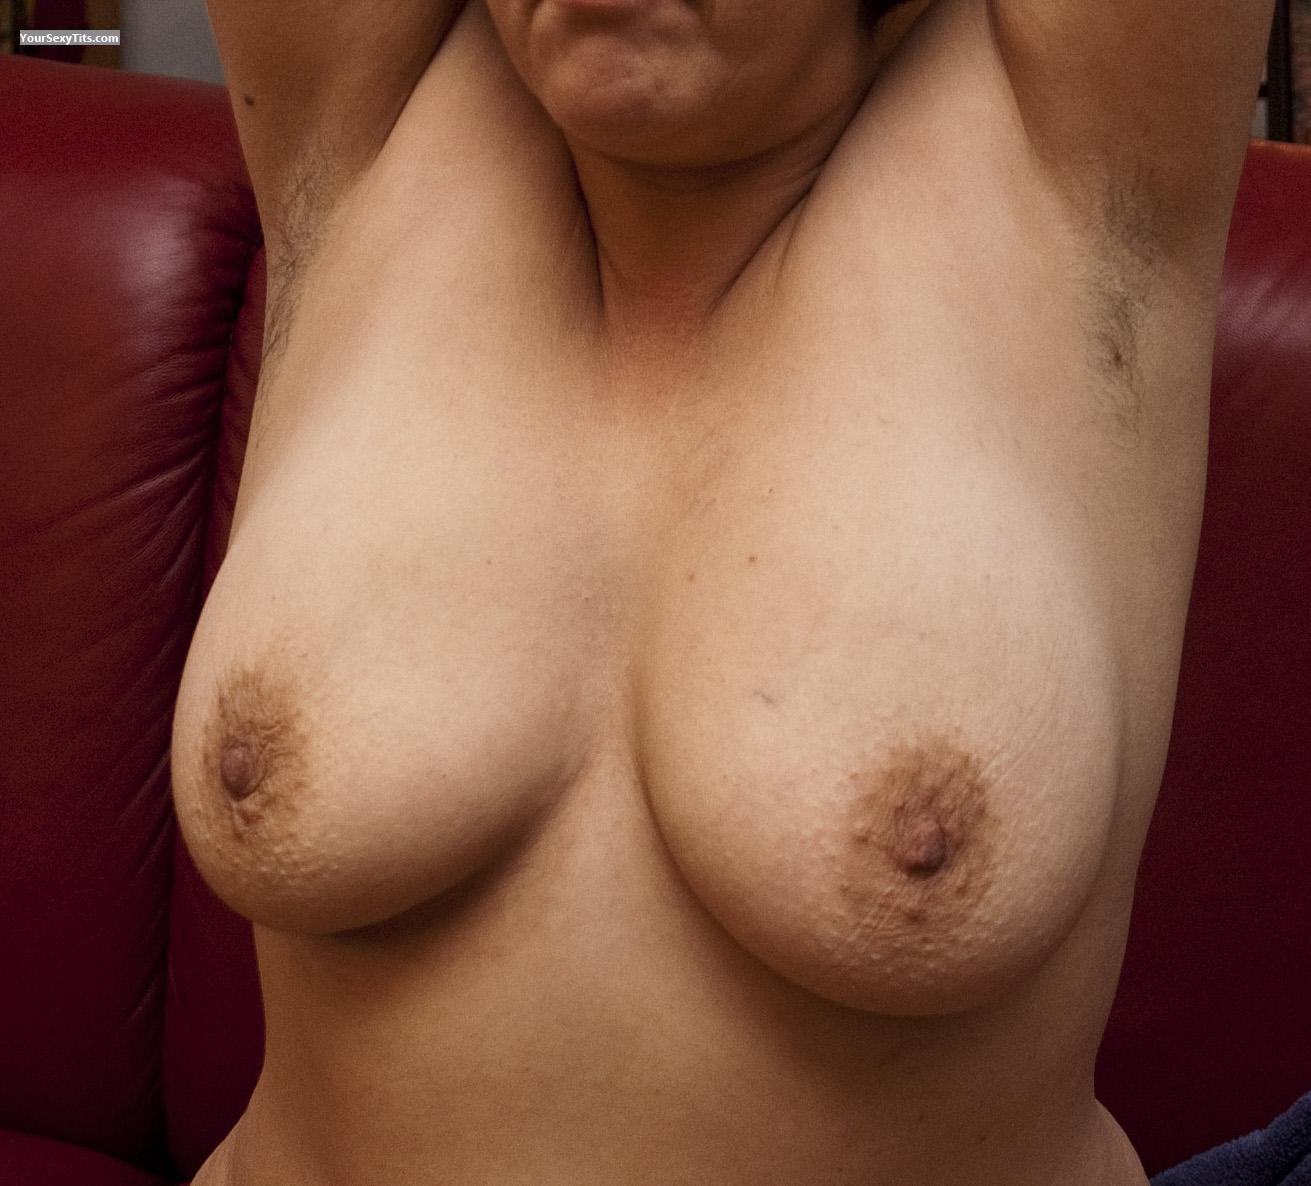 Tit Flash: Medium Tits - Norden from Germany